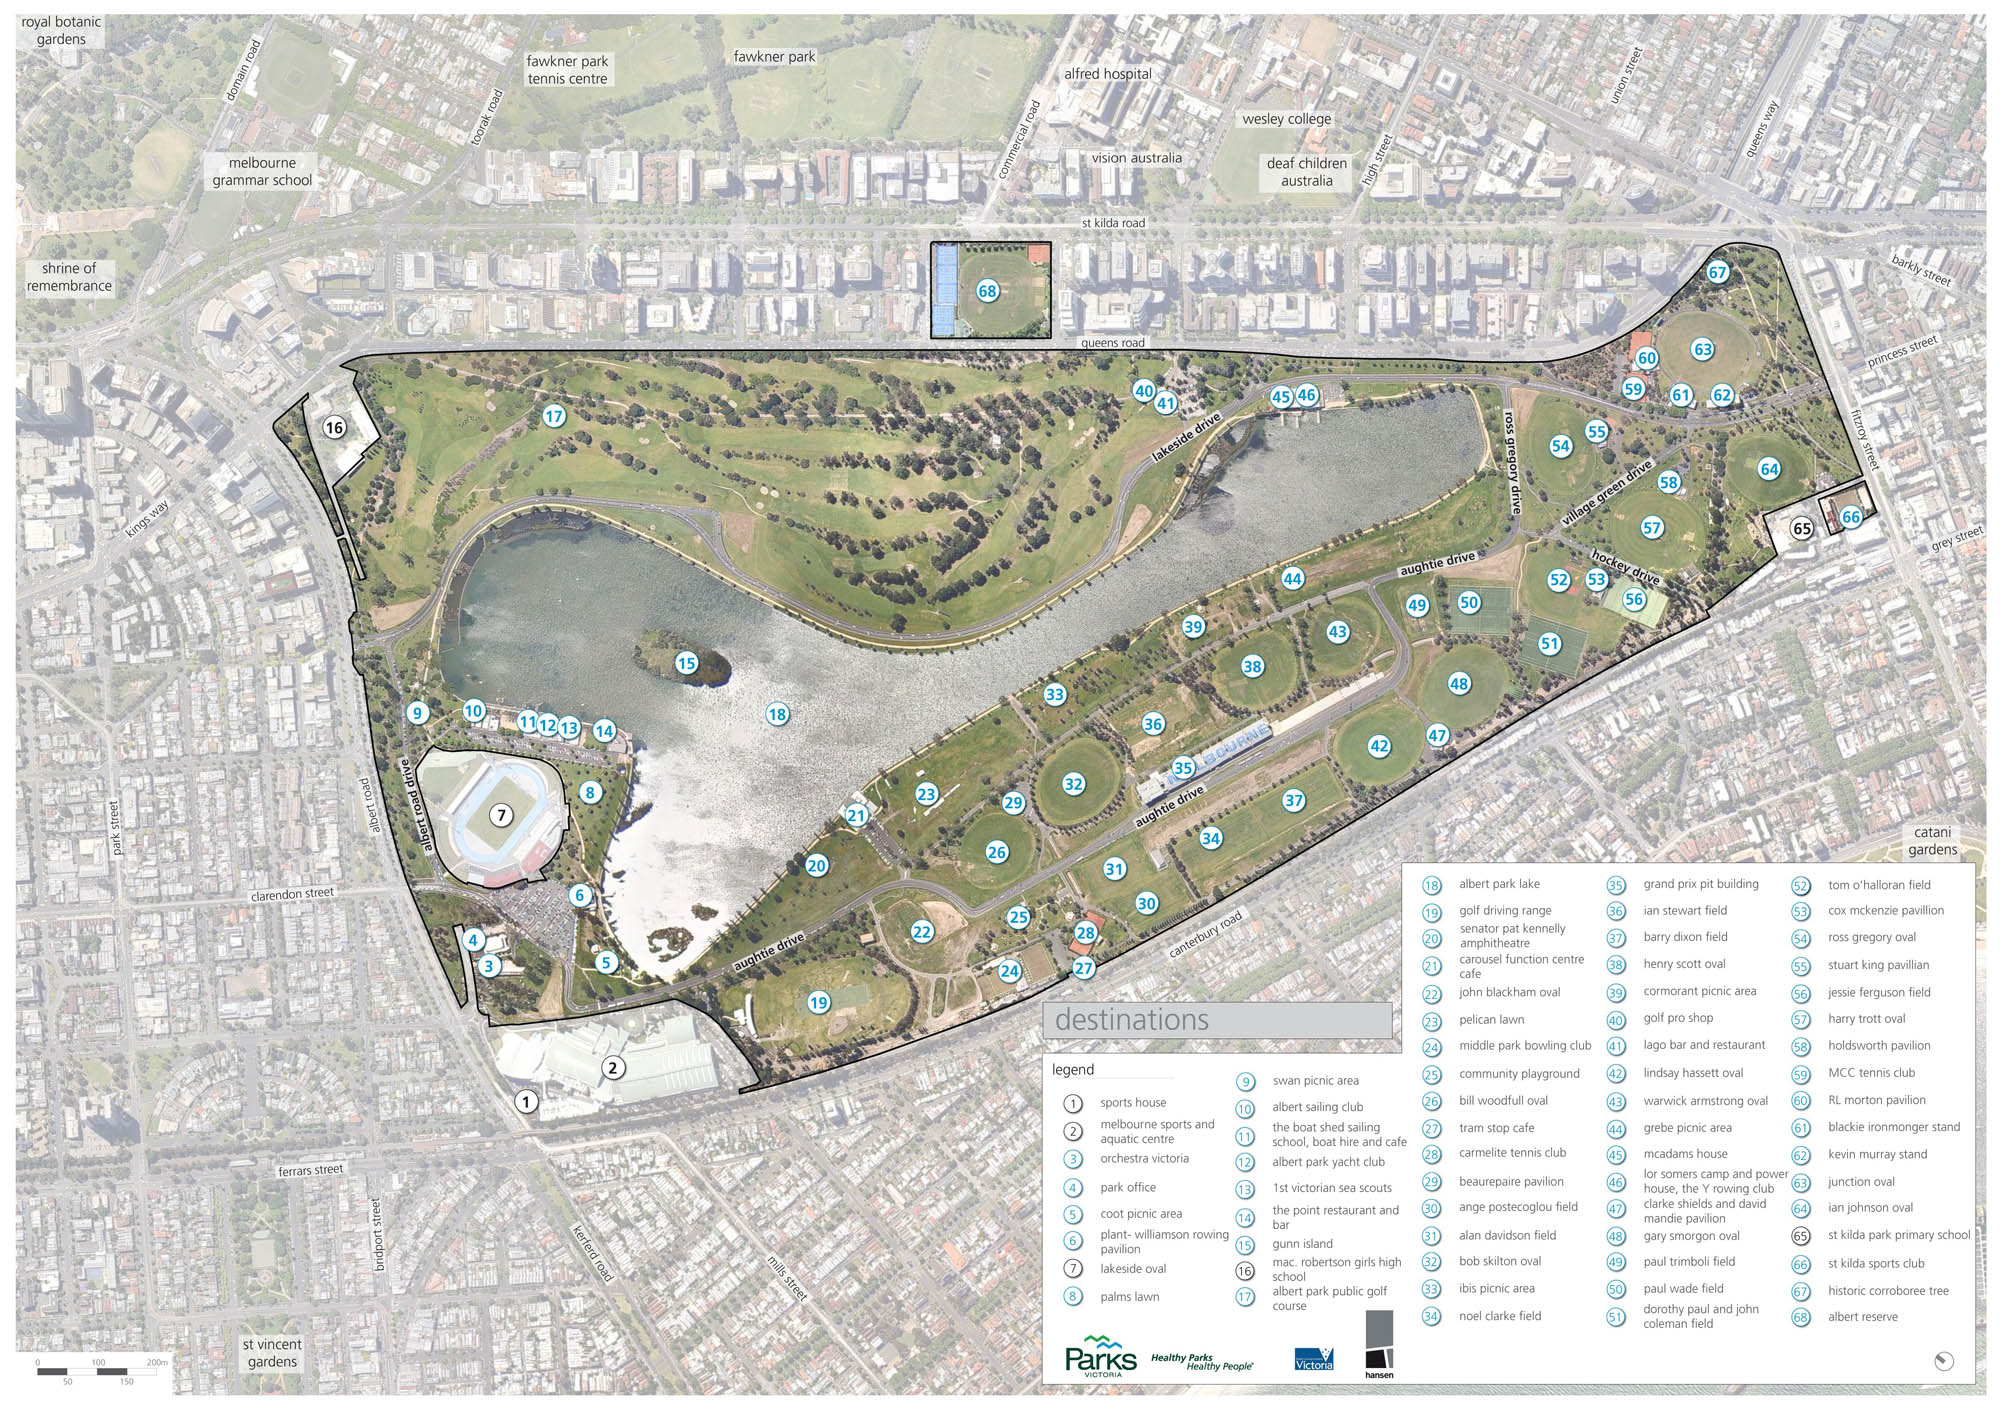 Albert Park renewal Draft Master Plan released